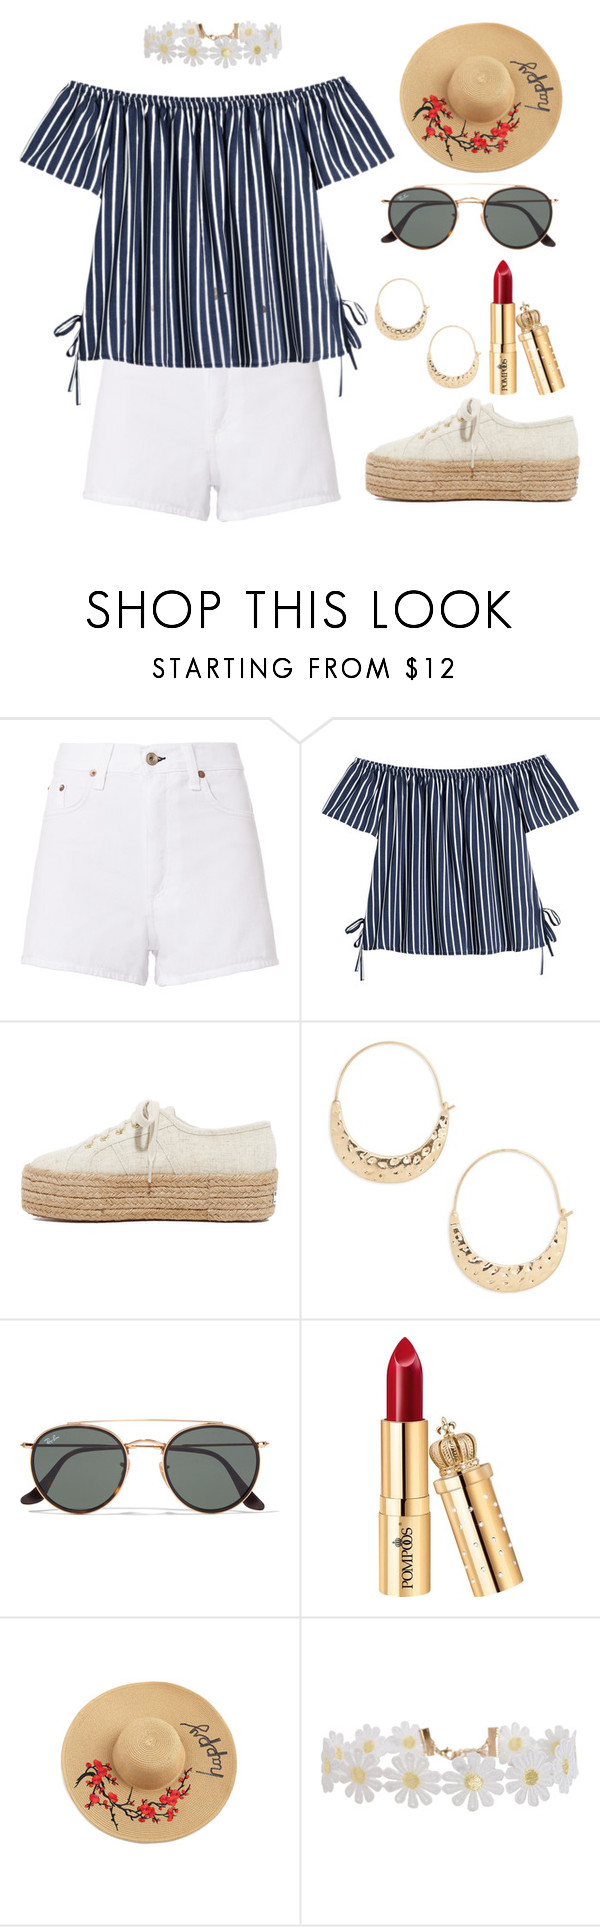 """""""Untitled #766"""" by dolrebeca ❤ liked on Polyvore featuring rag & bone, Superga, BP., Ray-Ban and Humble Chic"""